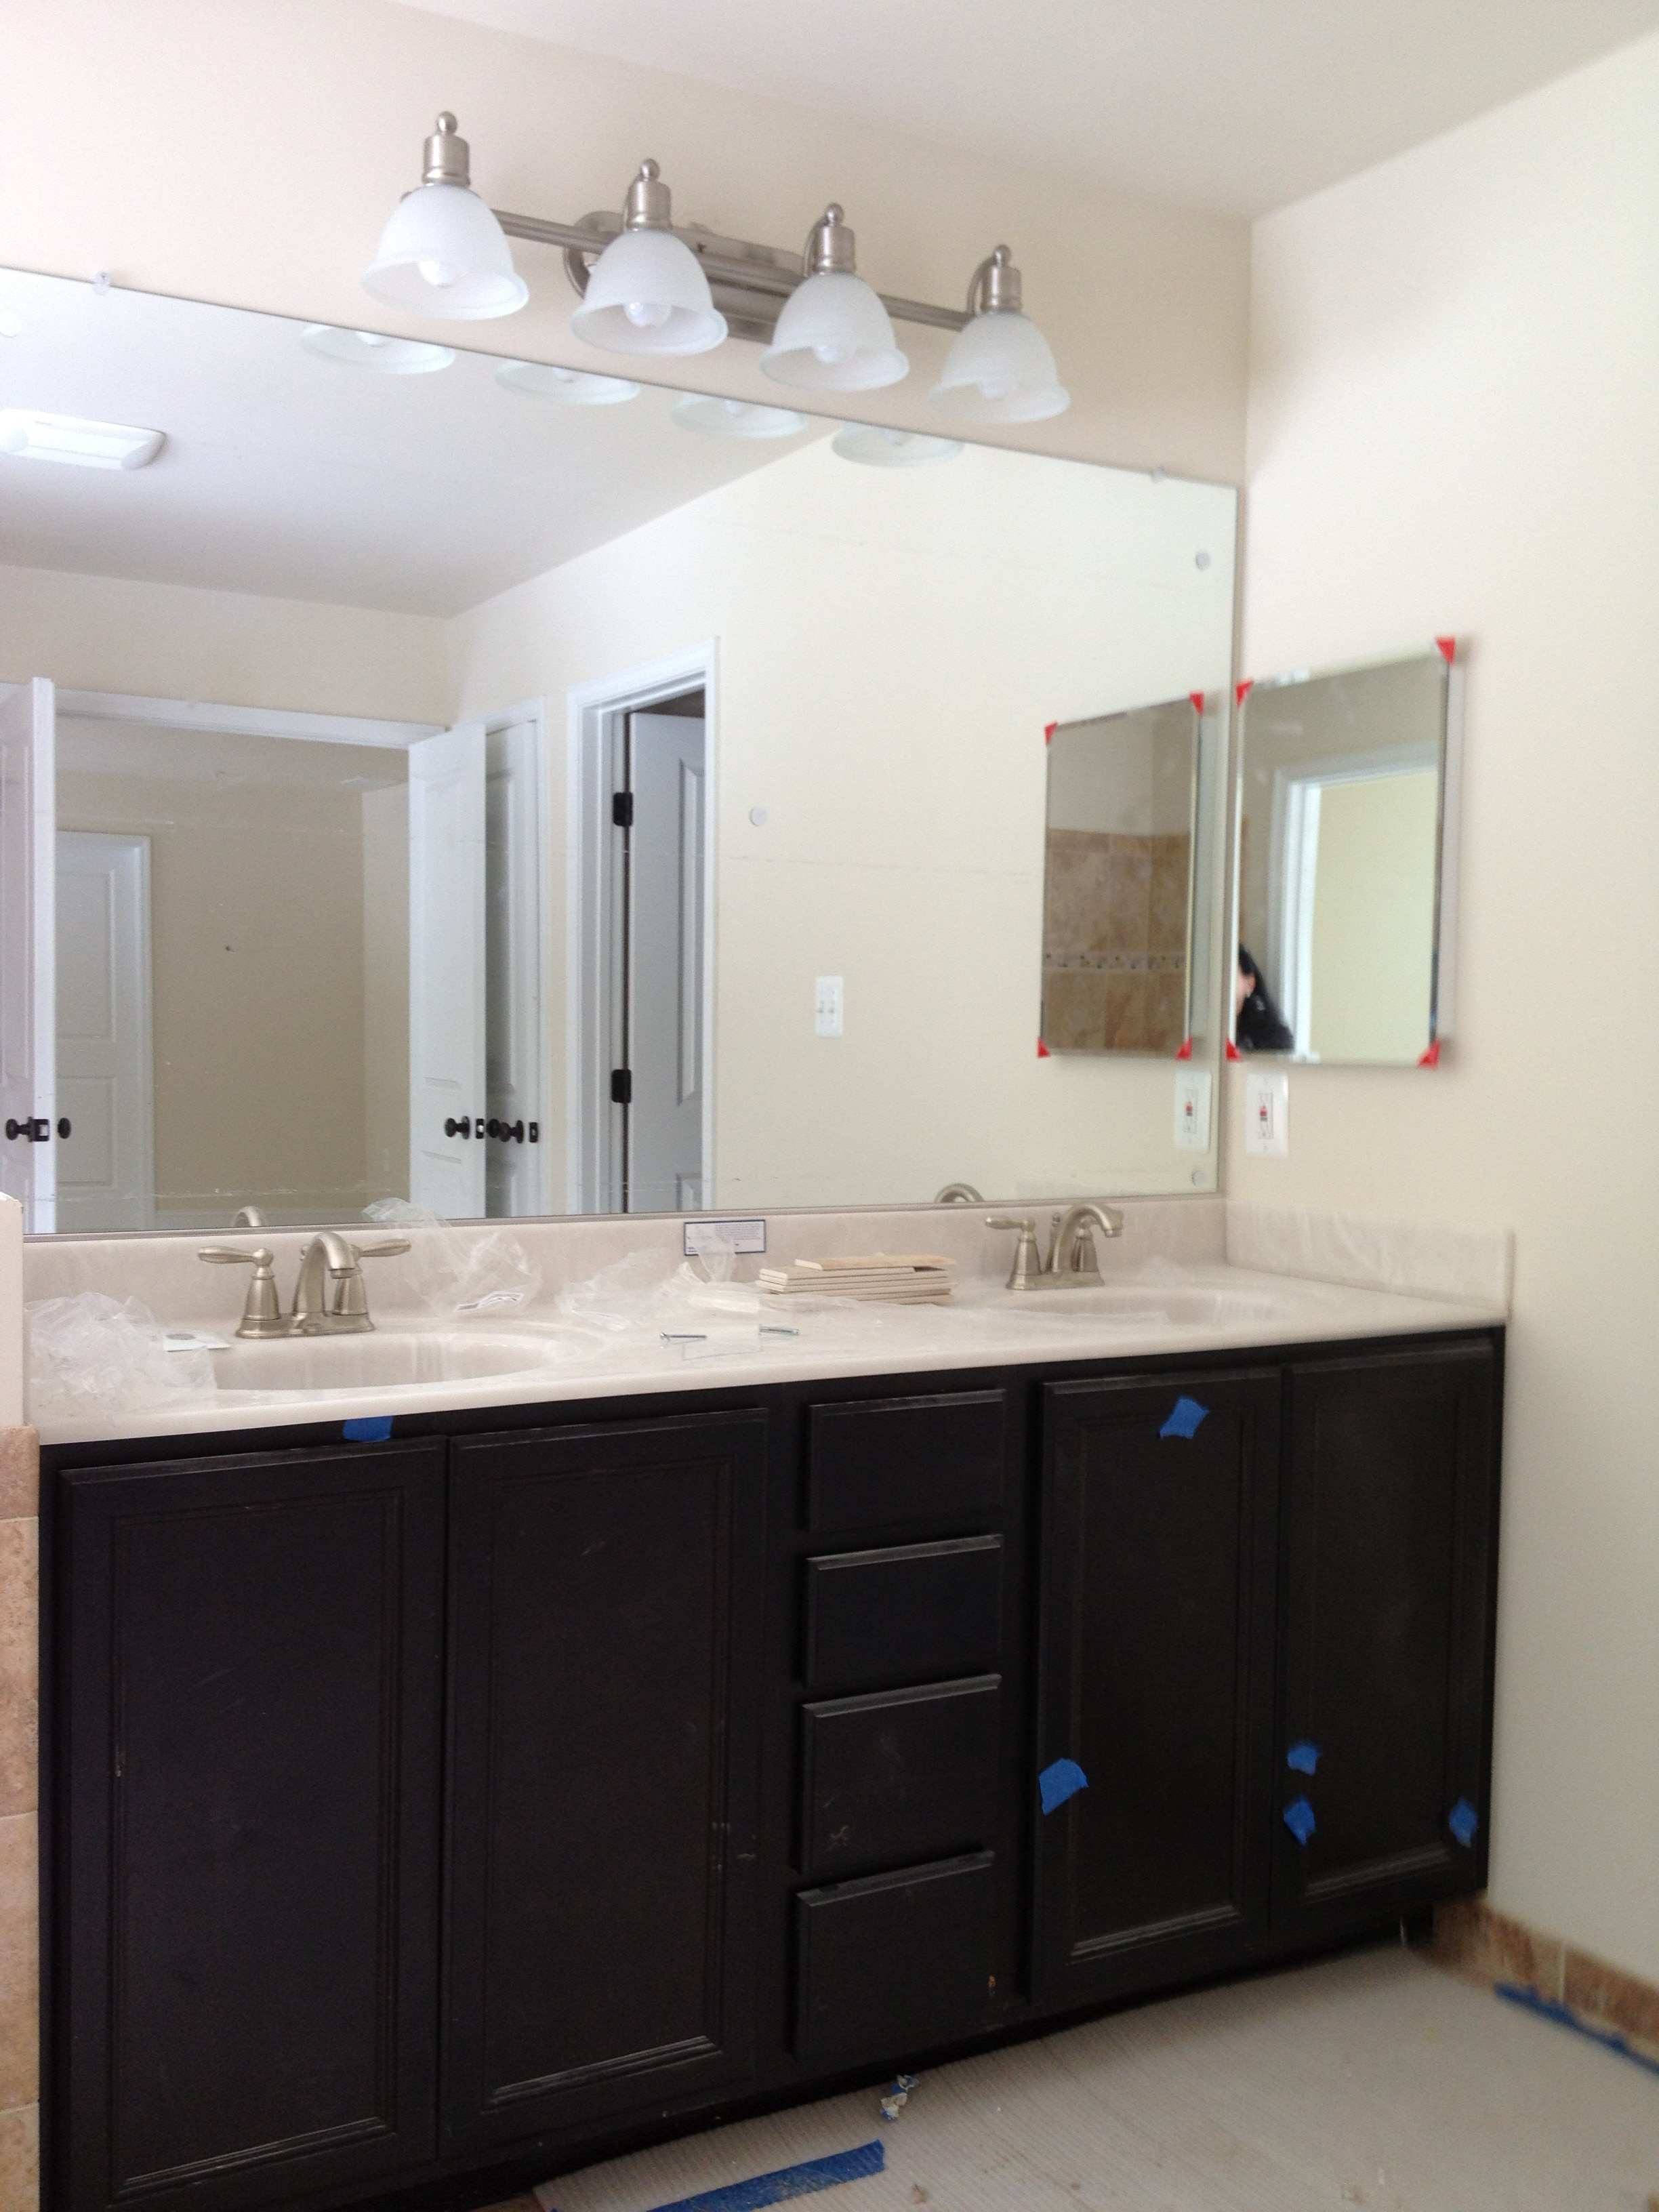 Home Depot Mirrors : depot, mirrors, Construction, Wendy, Slaughter, Elevate, Estate, Brokerage